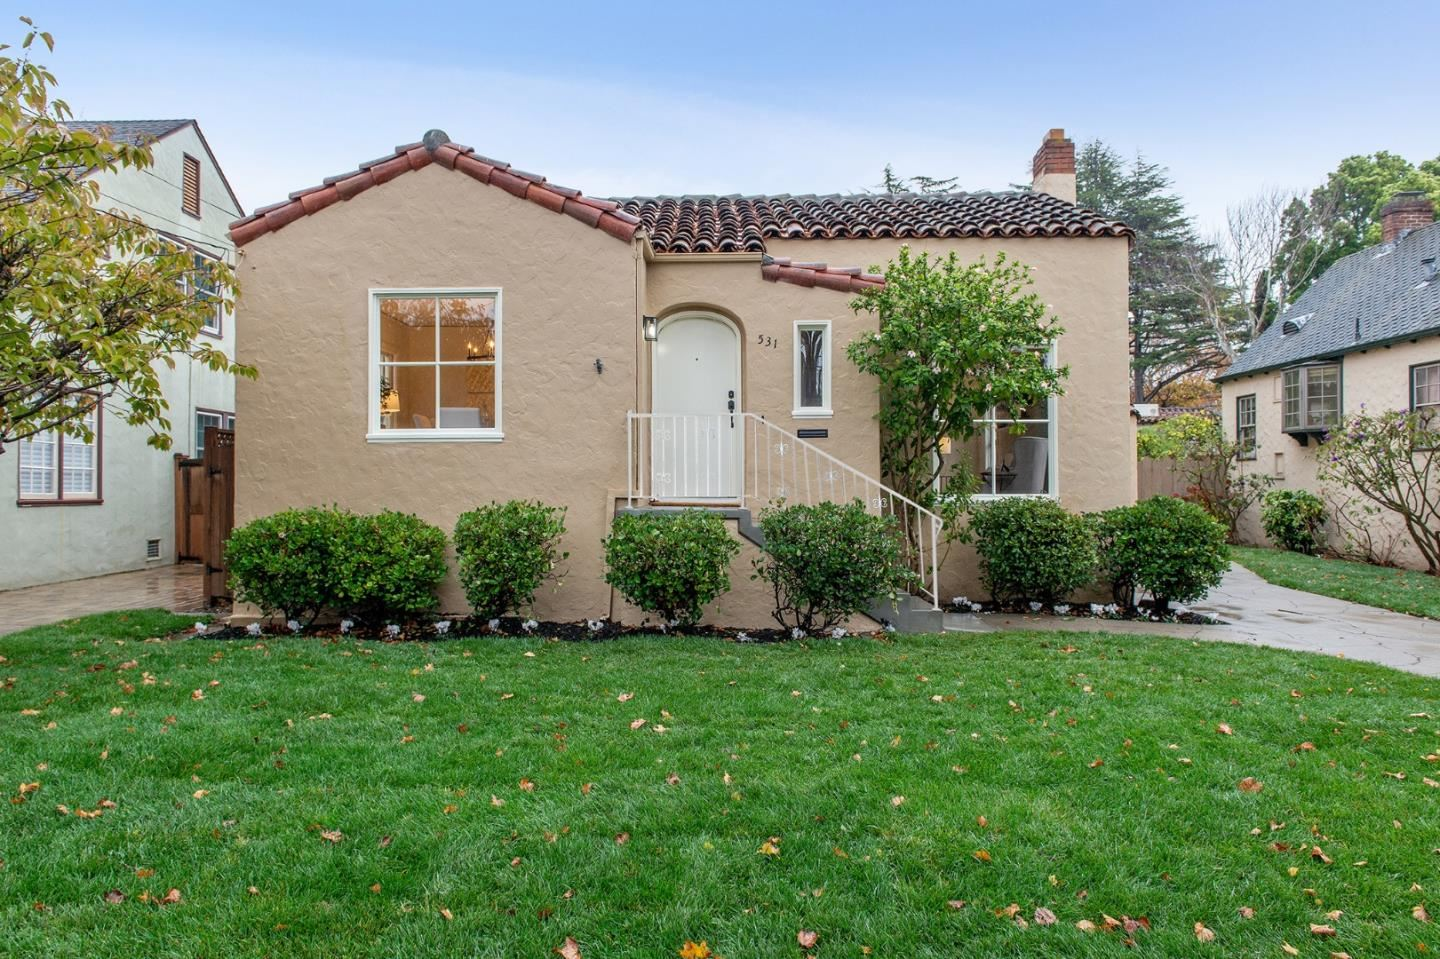 Photo for 531 Francisco DR, BURLINGAME, CA 94010 (MLS # ML81820818)